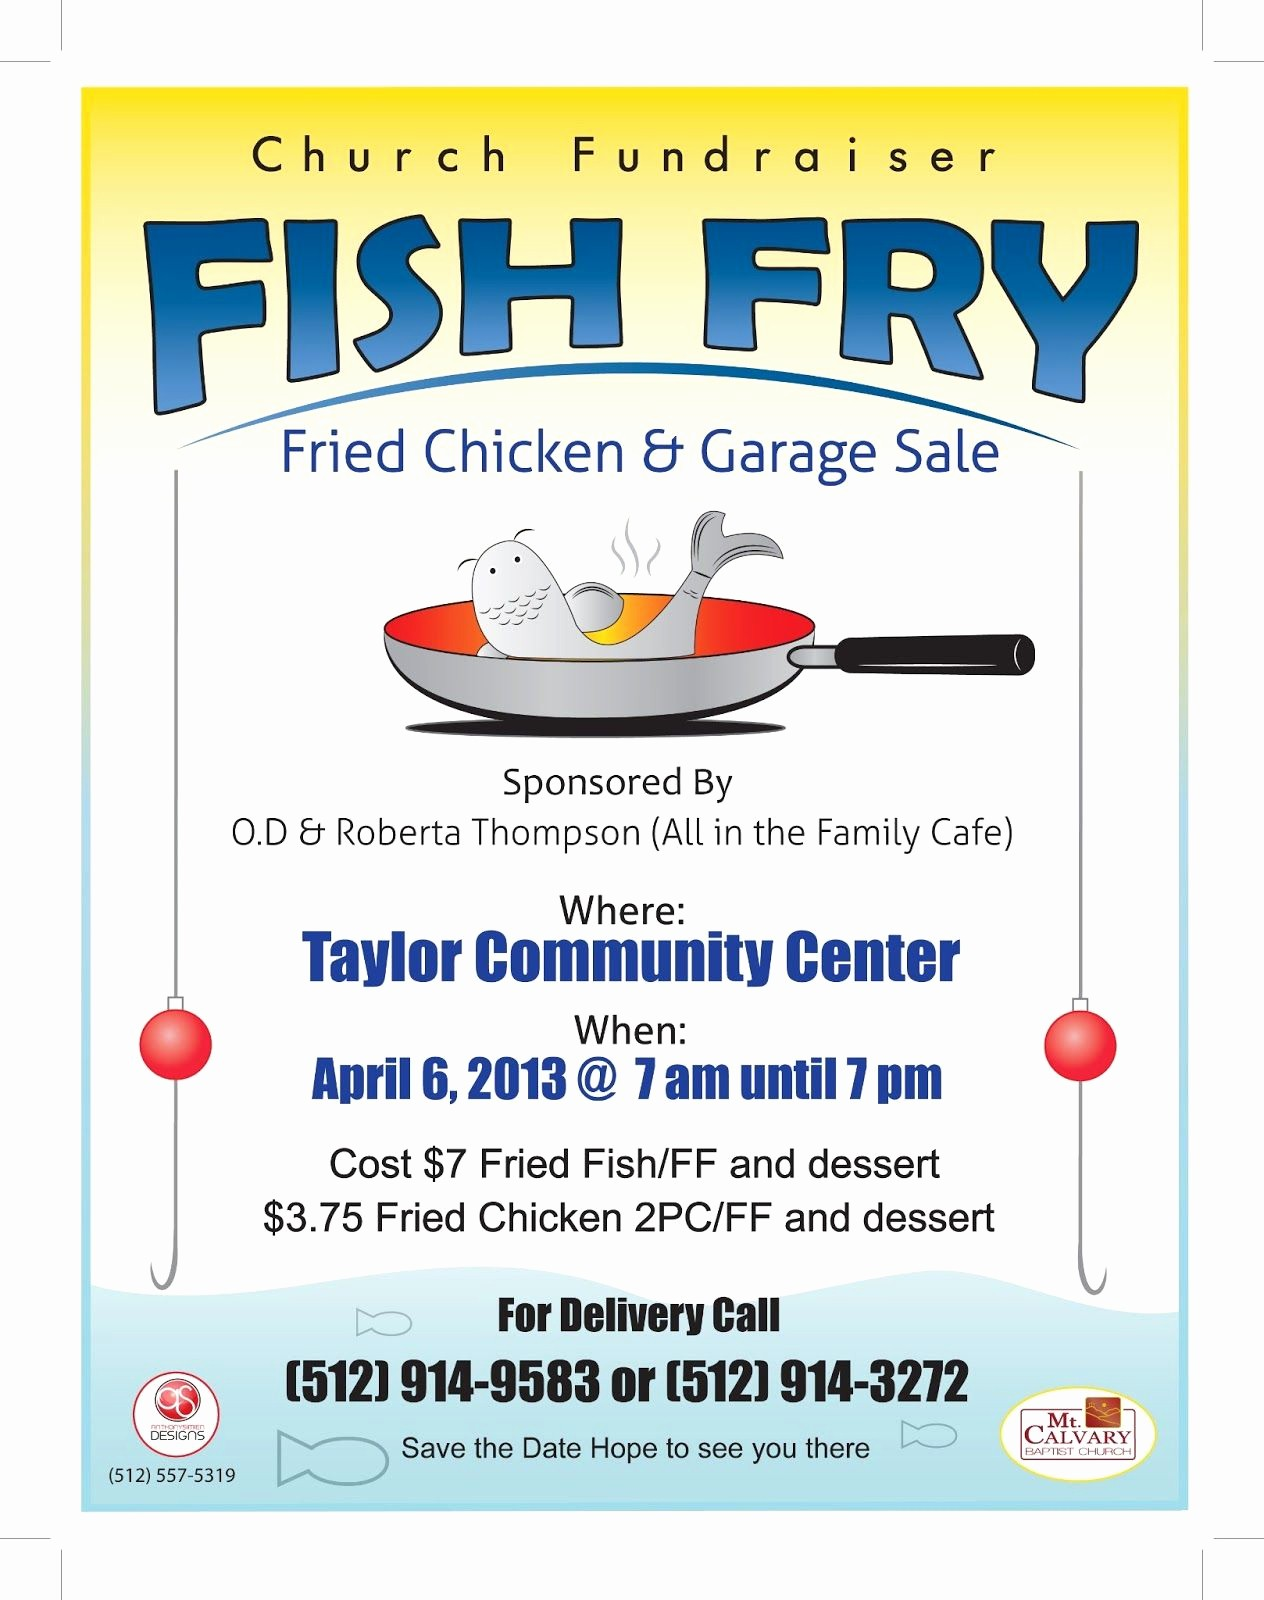 Free Fish Fry Flyer Templates Elegant Fish Fry Flyer Template to Add Anthony Simien